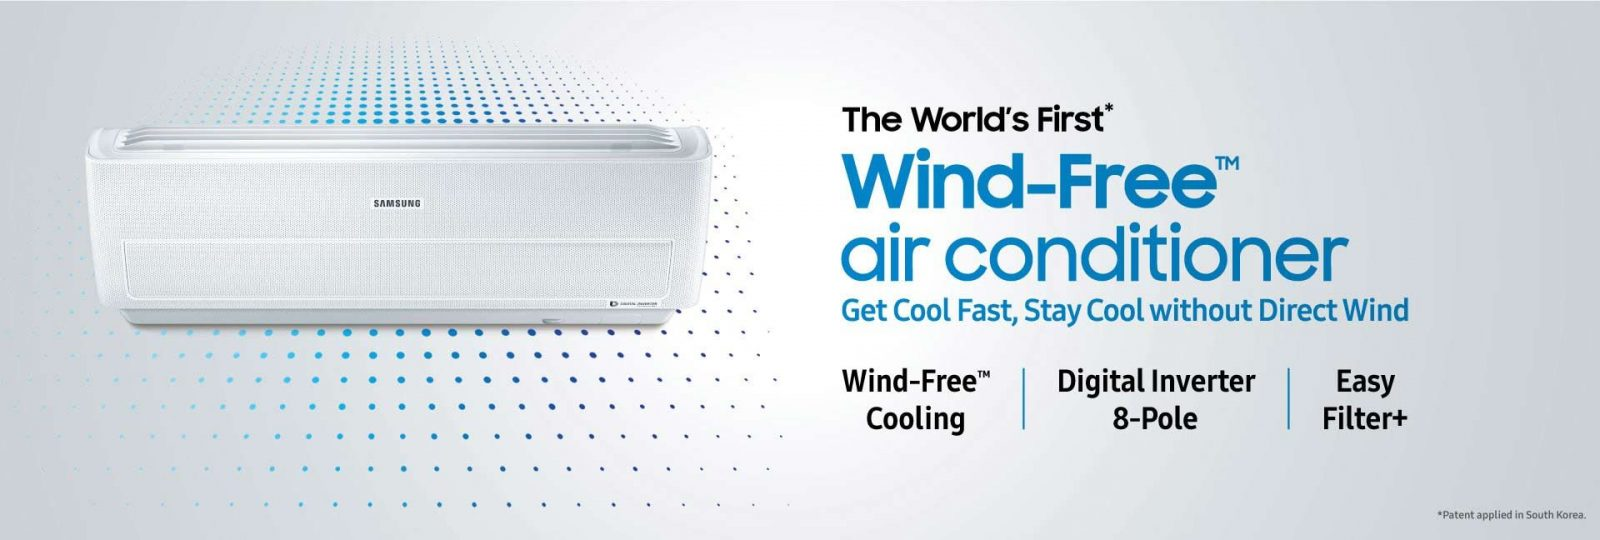 Samsung Air Conditioning Banner